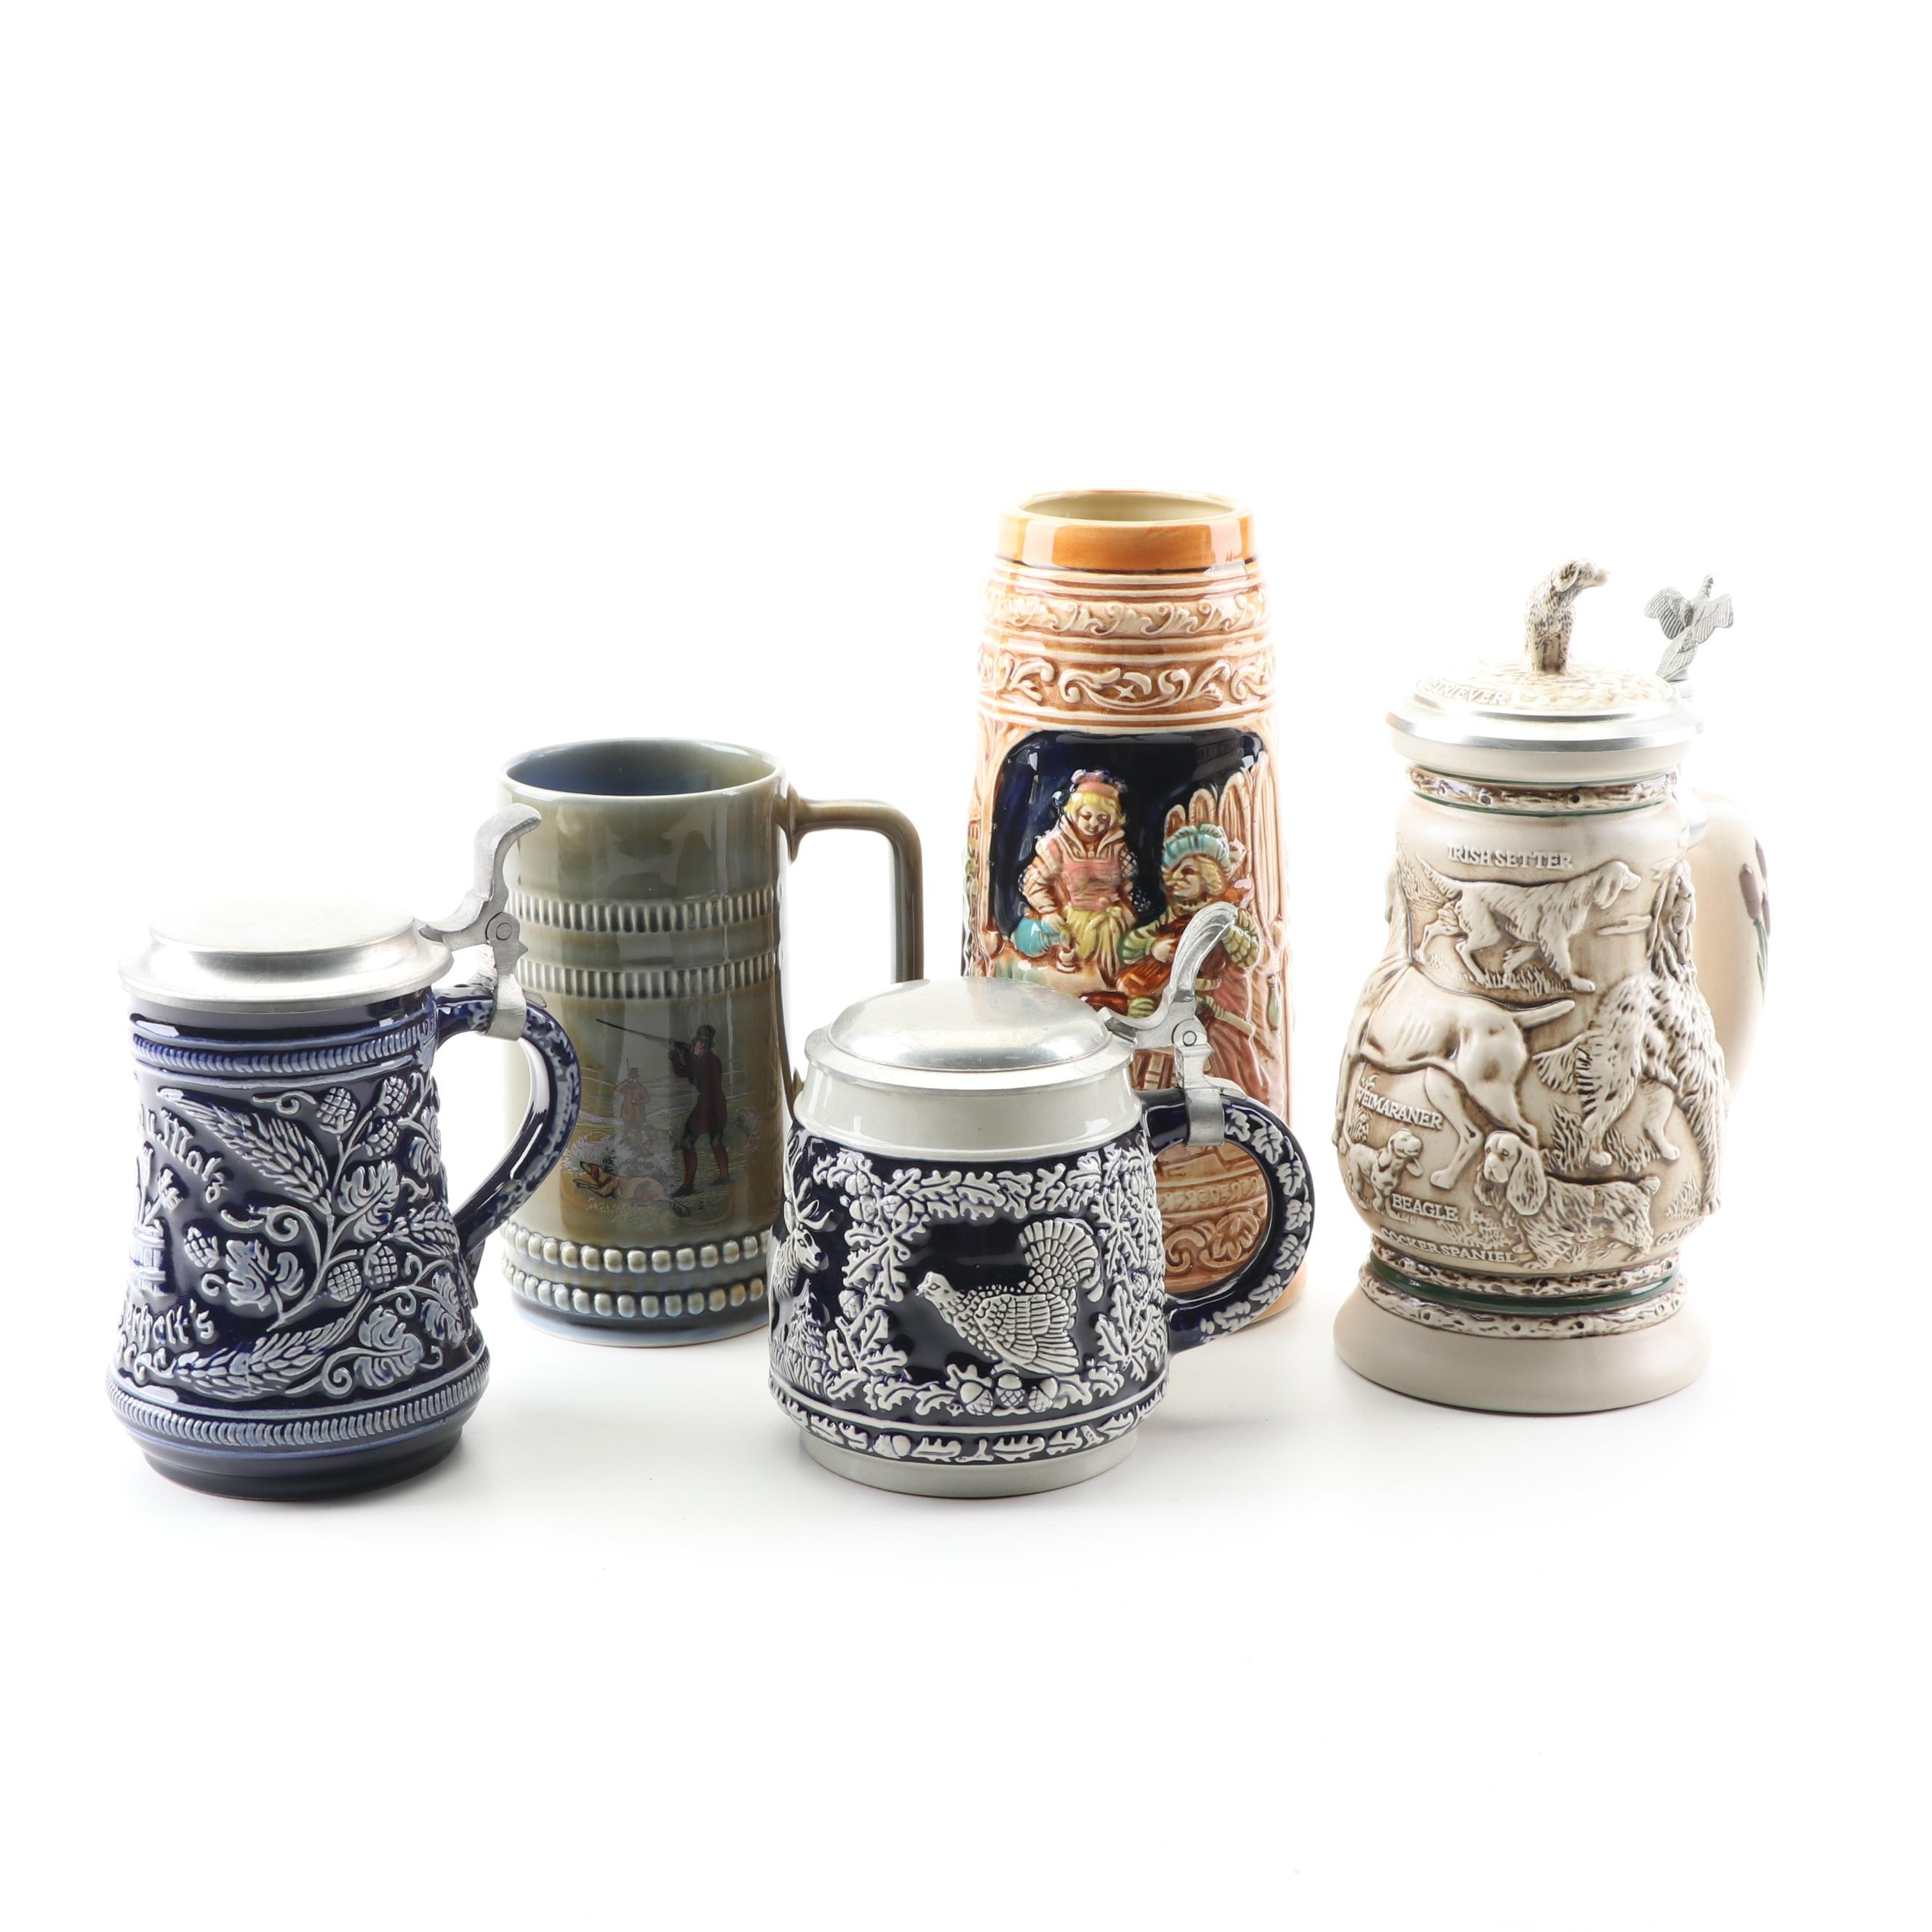 Beer Steins Including Avon and Irish Porcelain